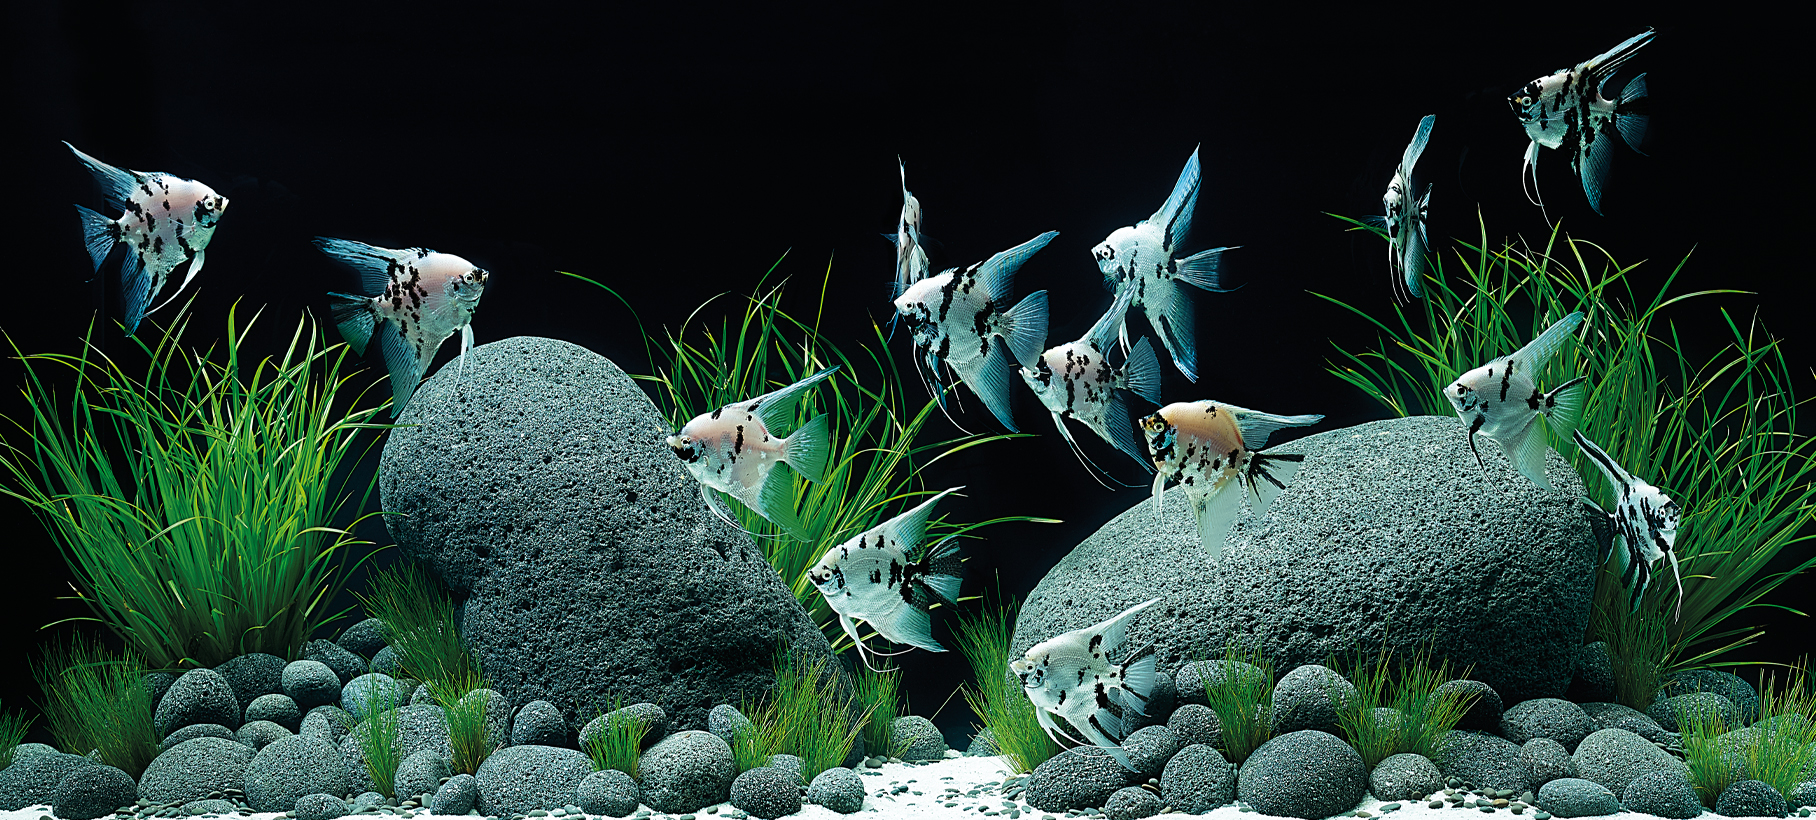 Aquascaping Inspiration Oase Living Water